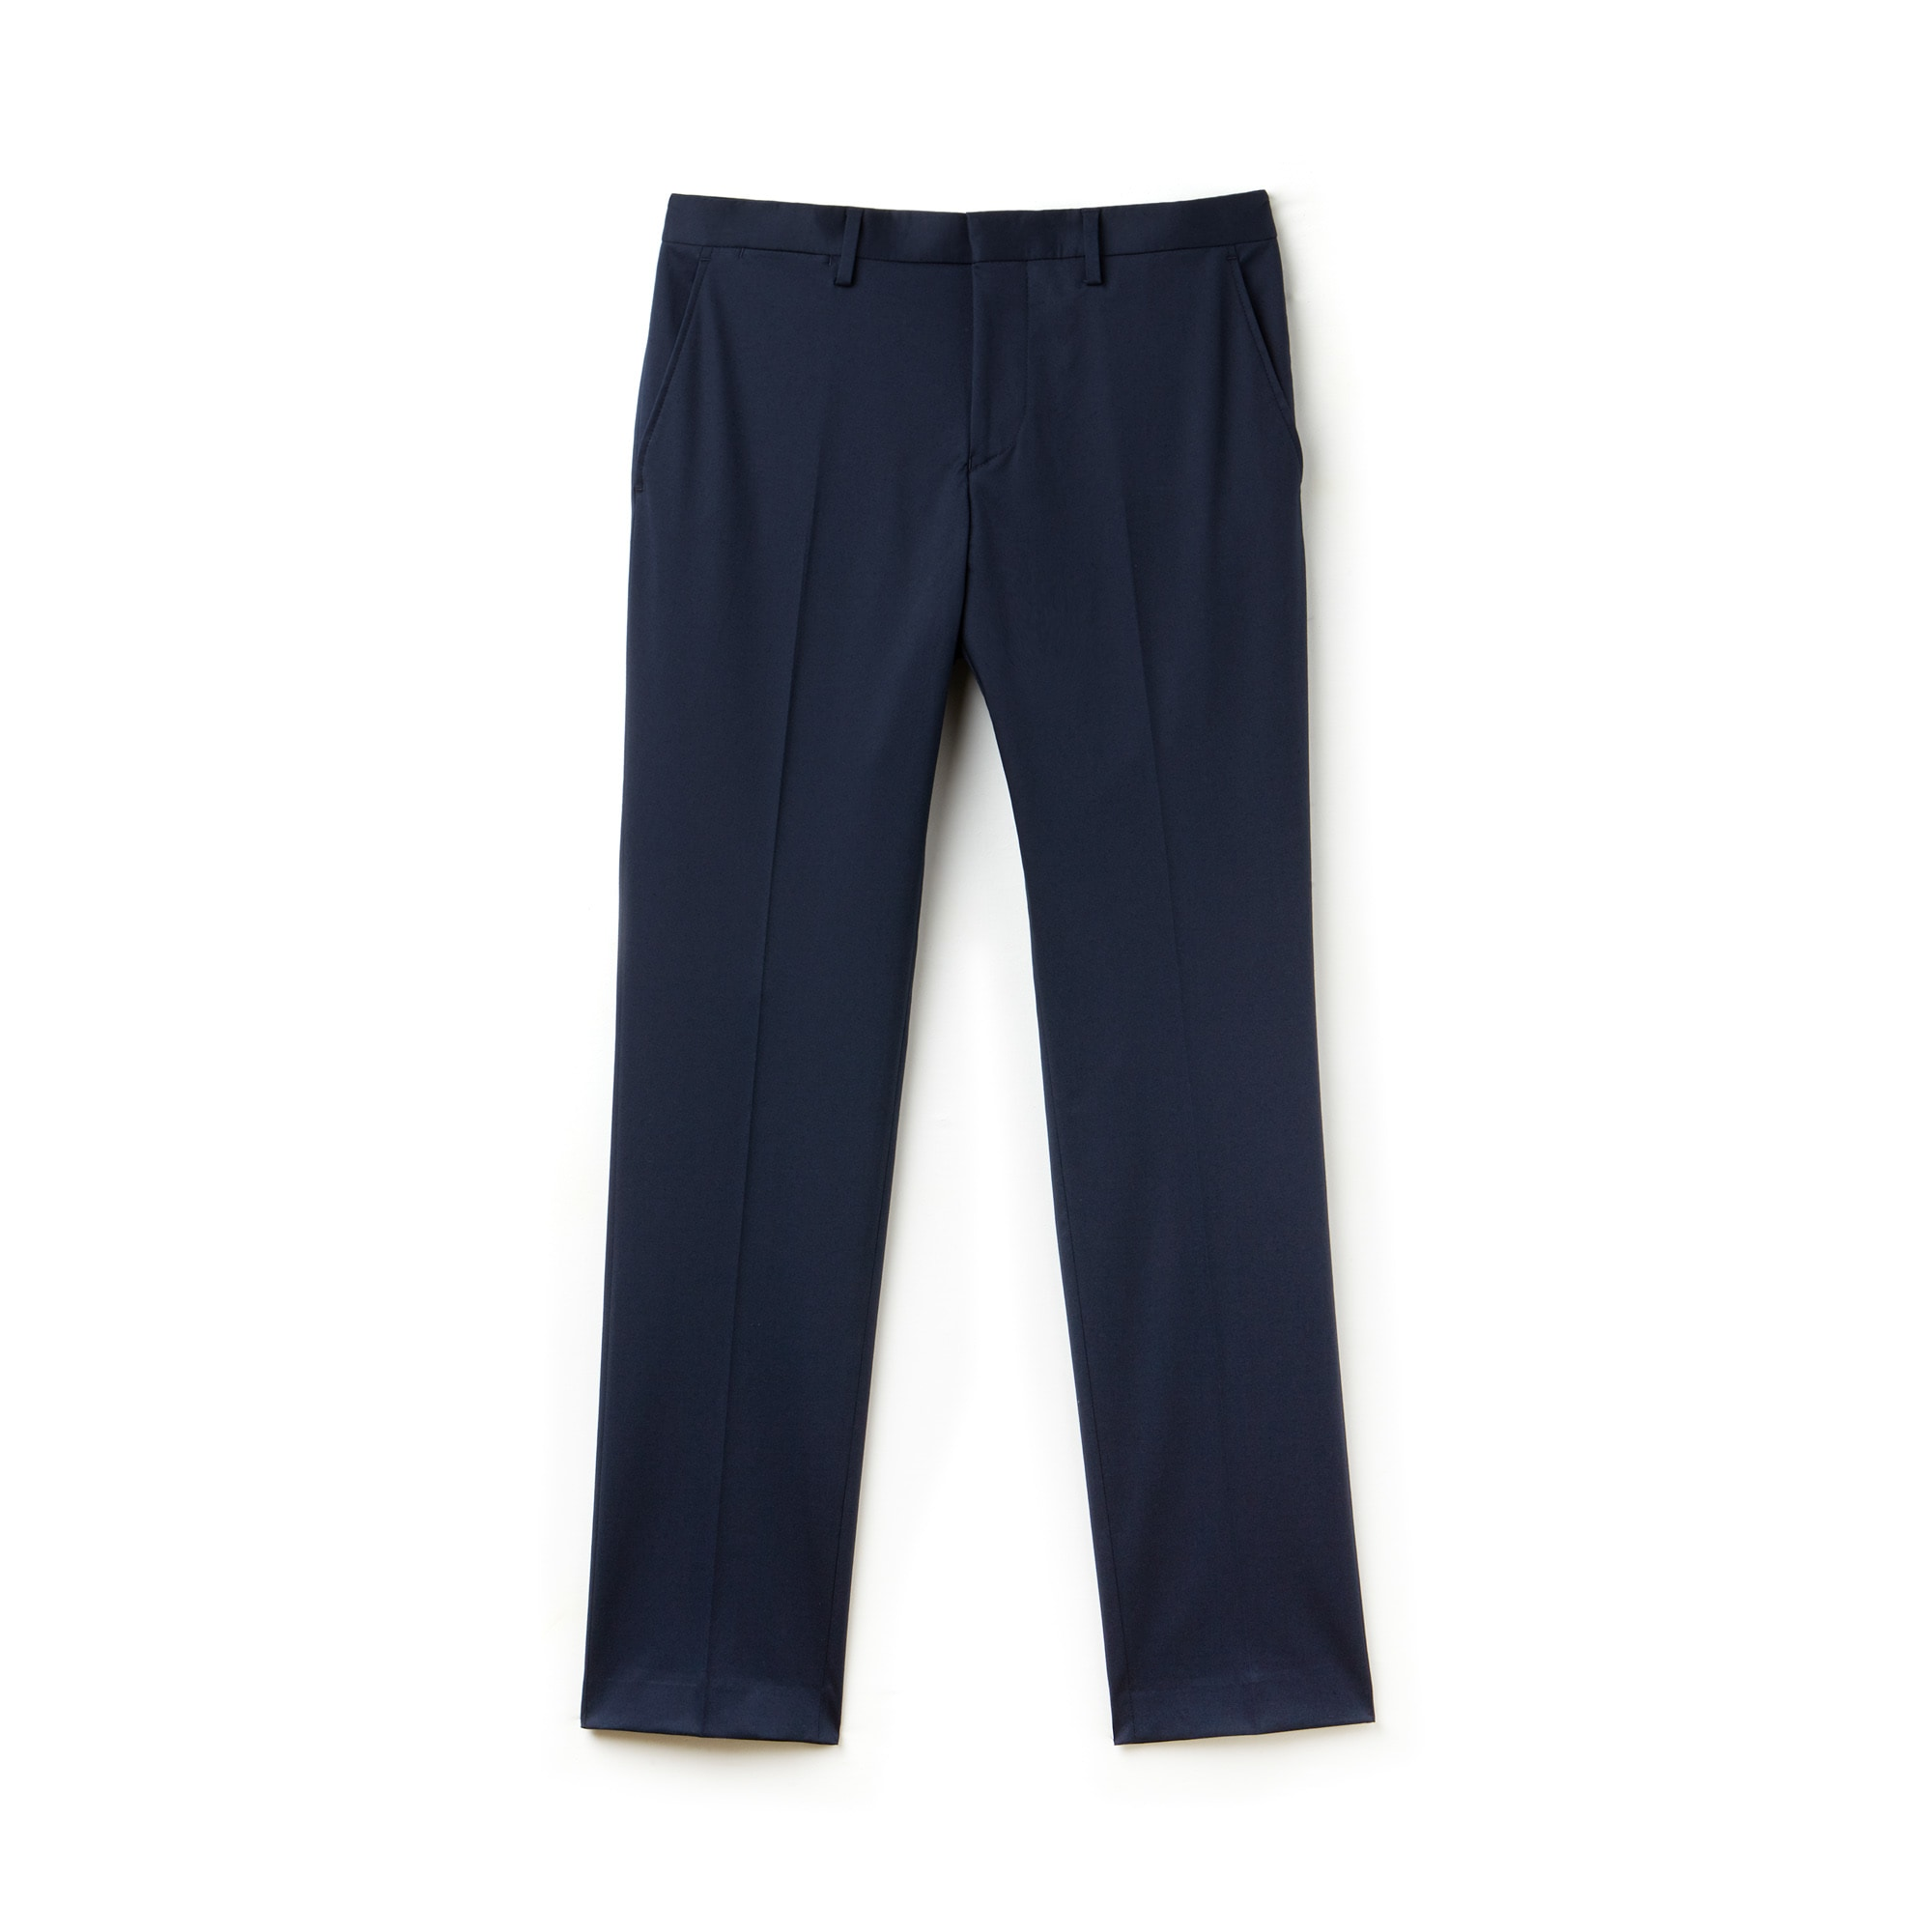 Pantalon chino à pinces slim fit en gabardine unie